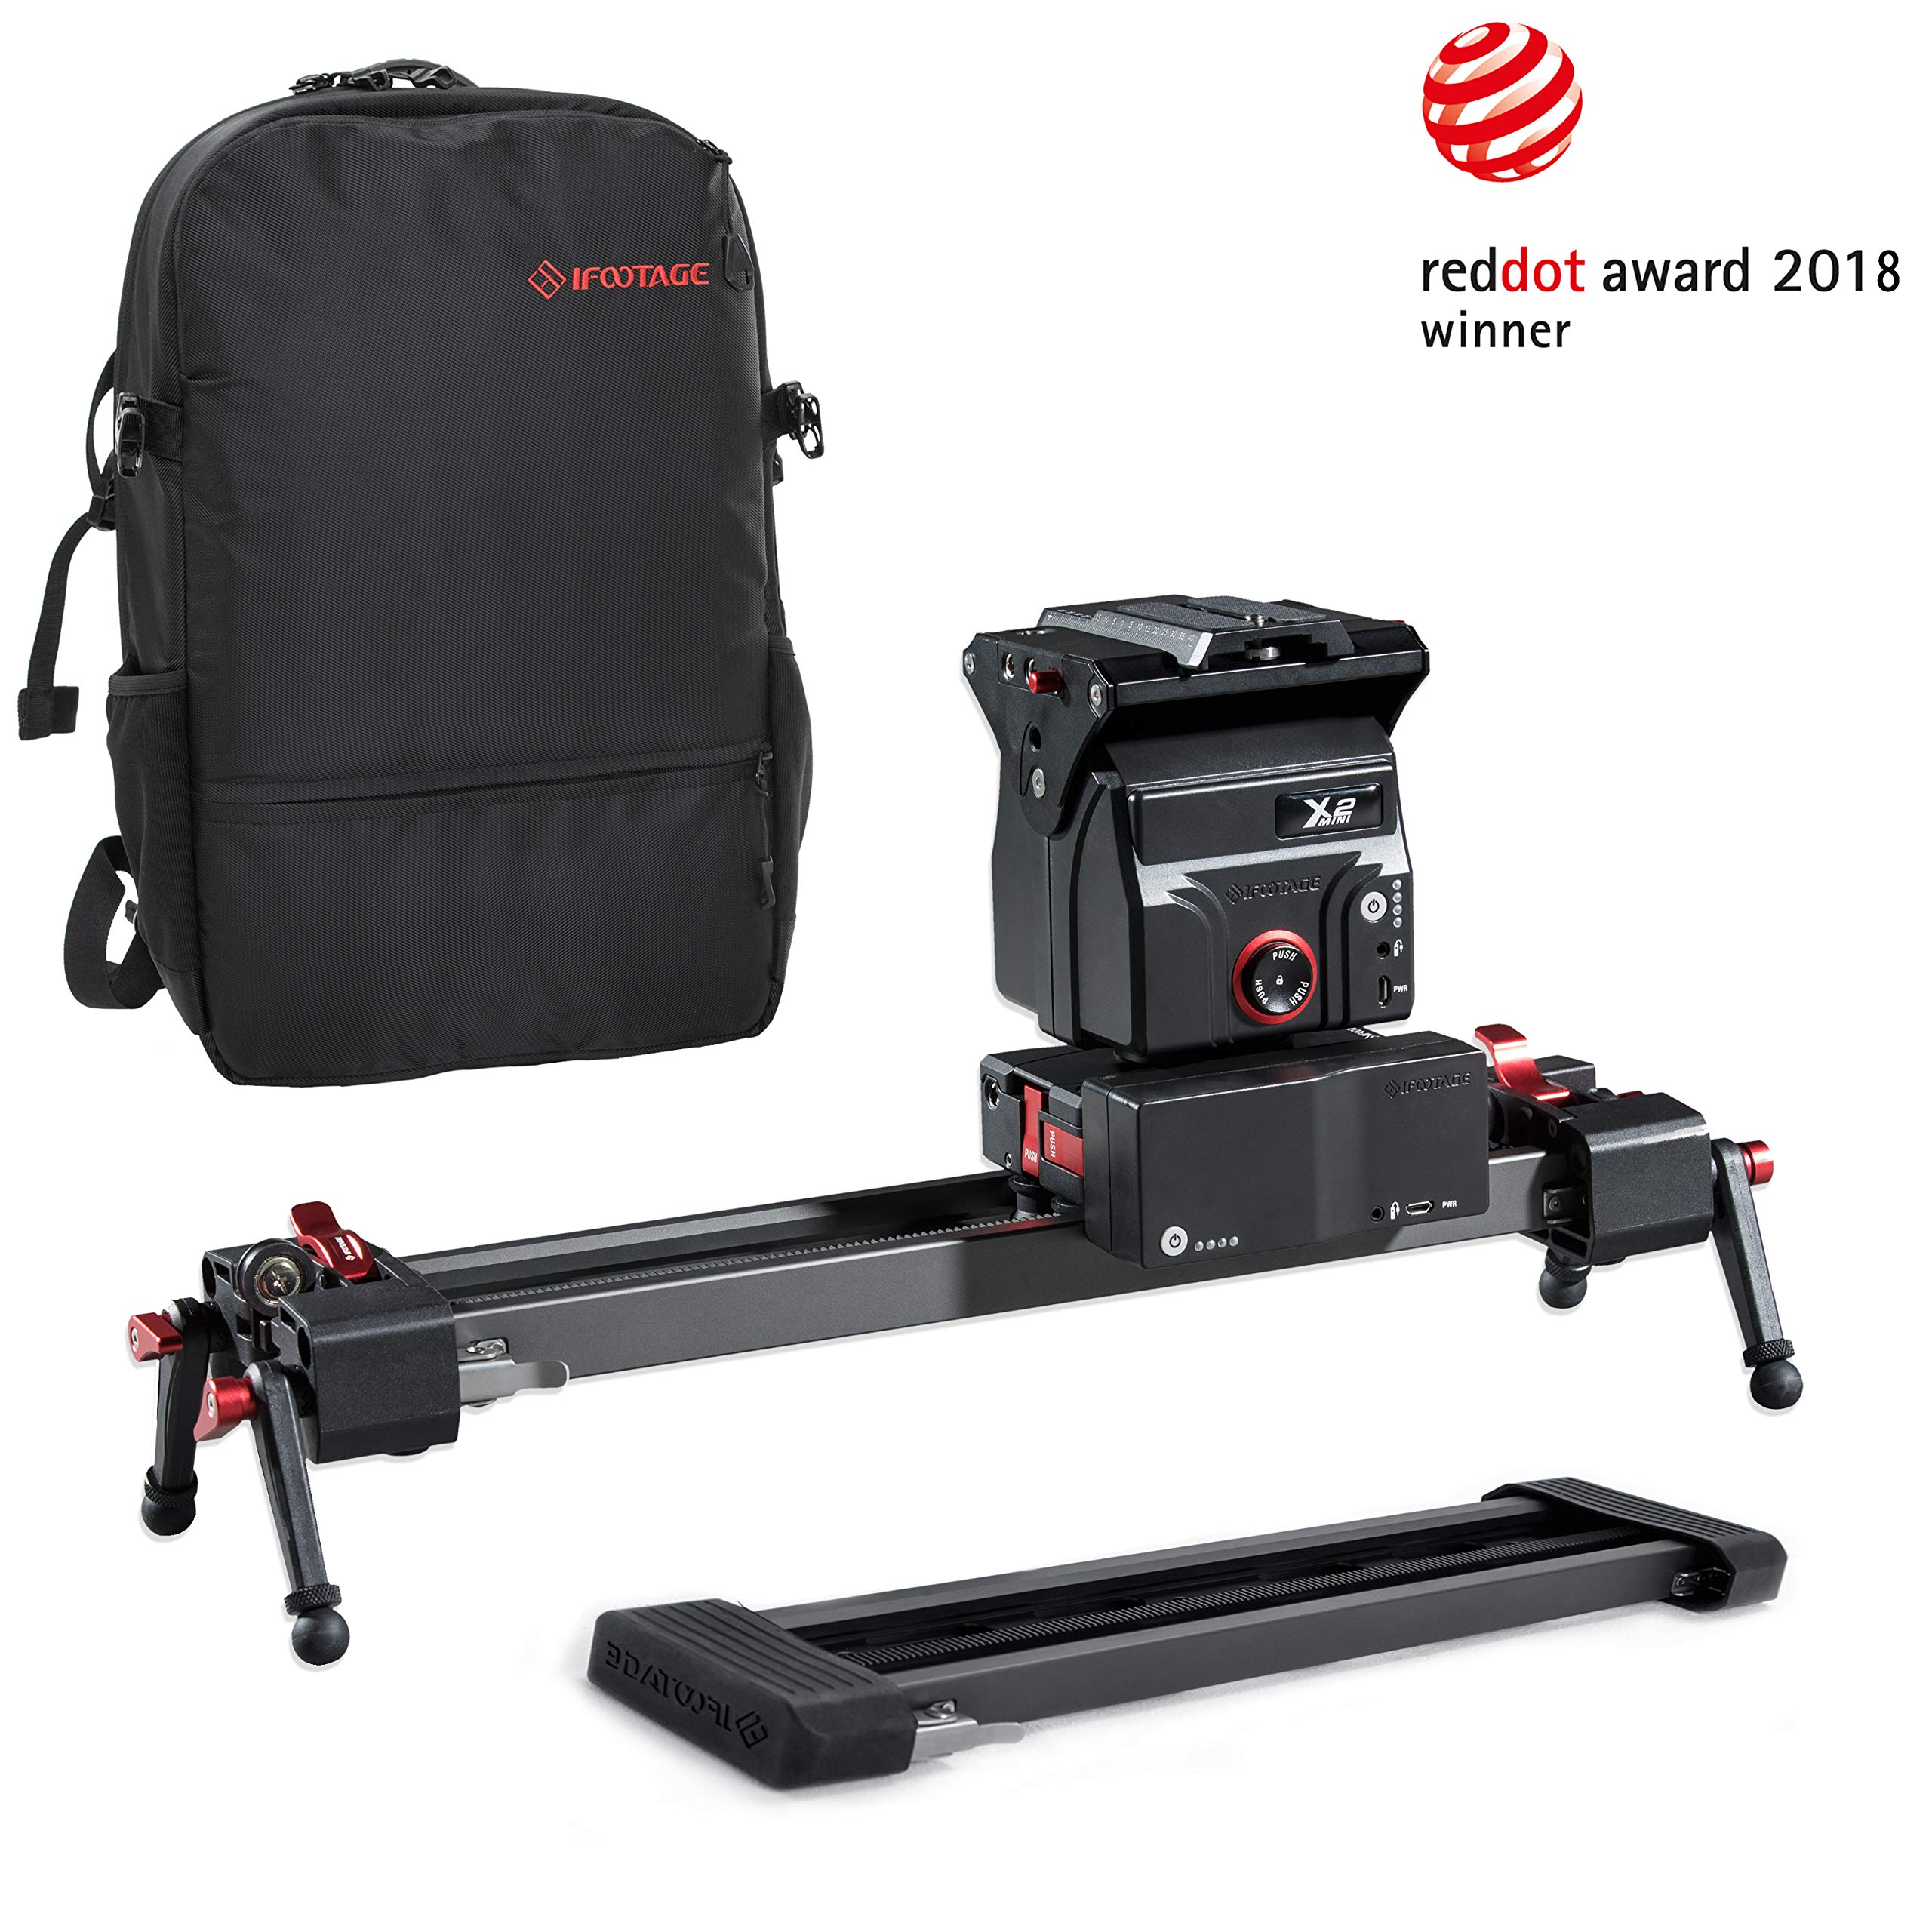 IFOOTAGE Electric Camera Slider 33inch Motorized Photography Slider Tracker Silent Motor Camcorder Tracking Video Shooting Follow Focus - Shark Slider Mini with Backpack by IFOOTAGE